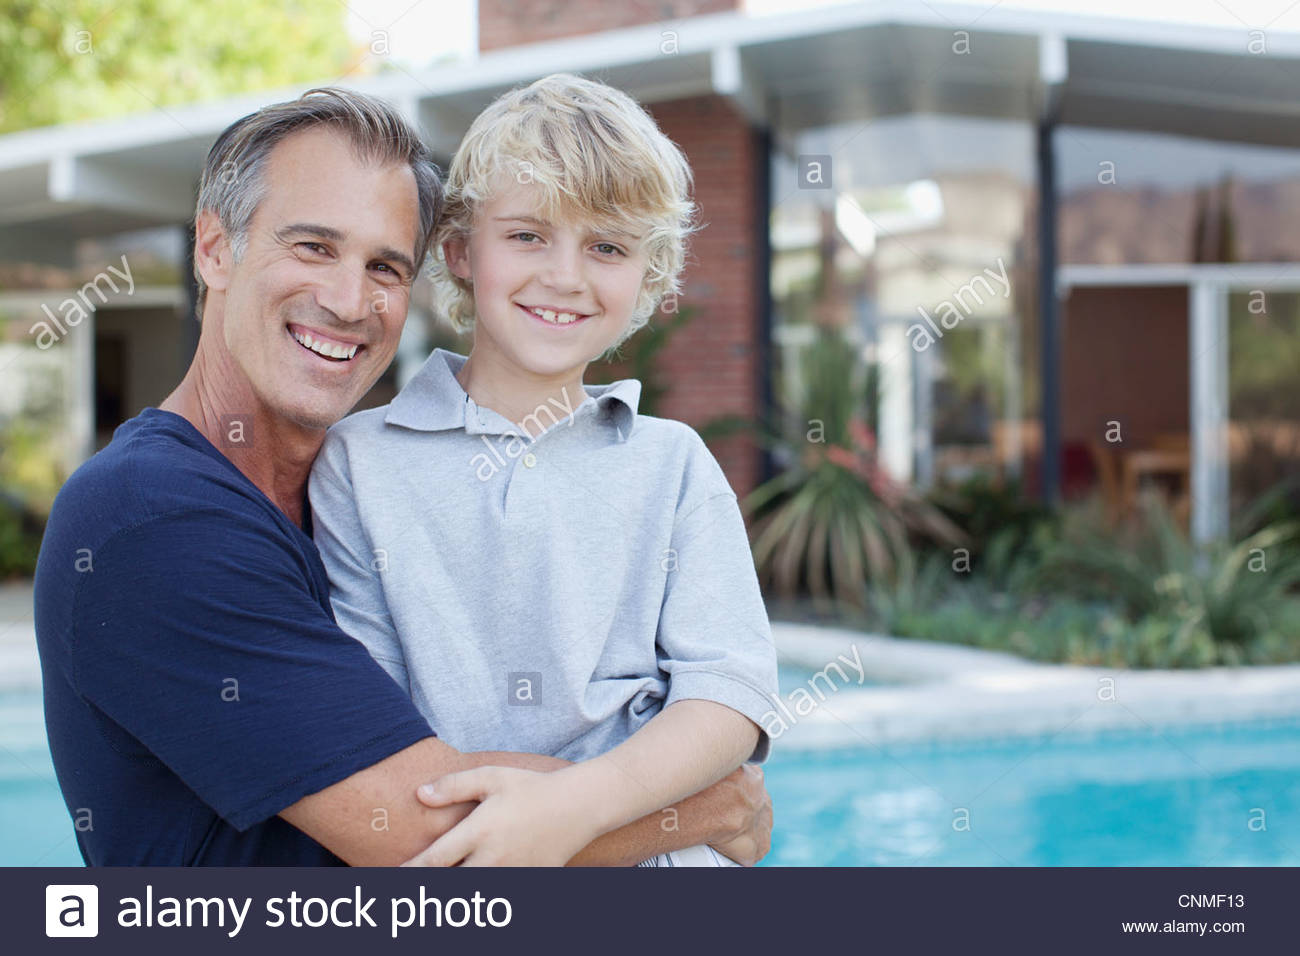 Father and son hugging by pool - Stock Image